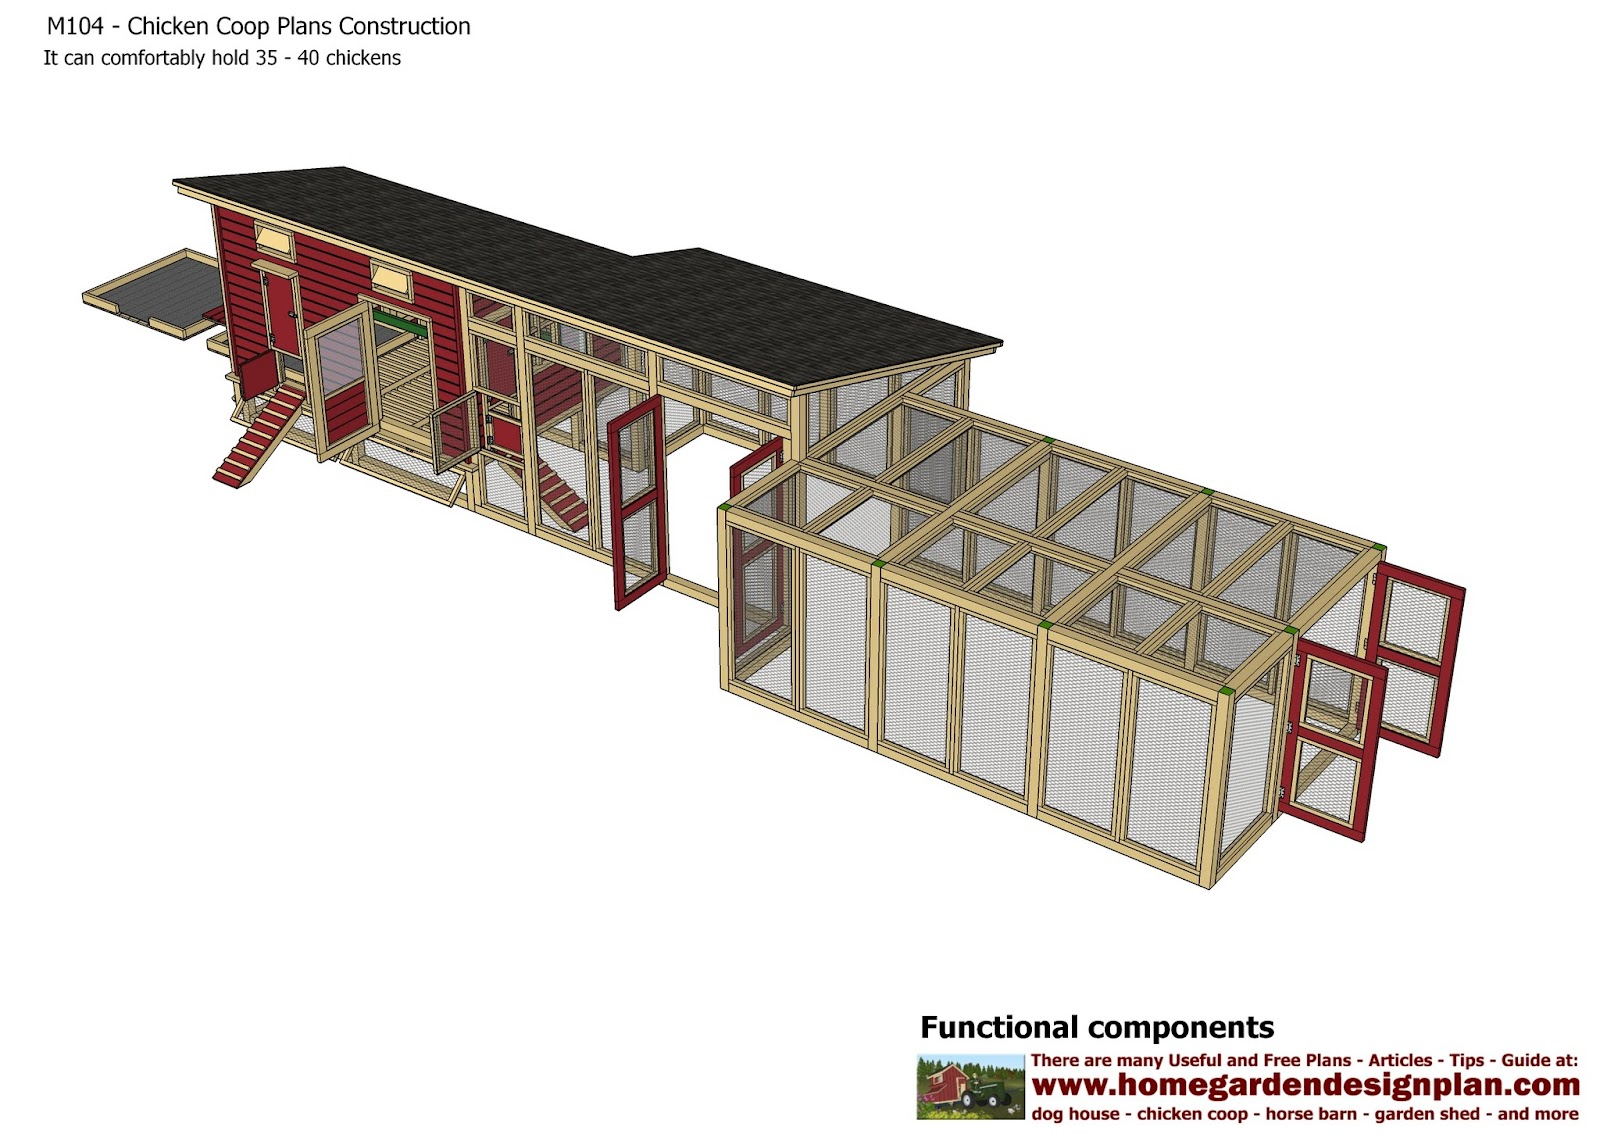 Chicken House Plans For 50 Chickens Coop Chikens Download 50 Chicken Coop Plans